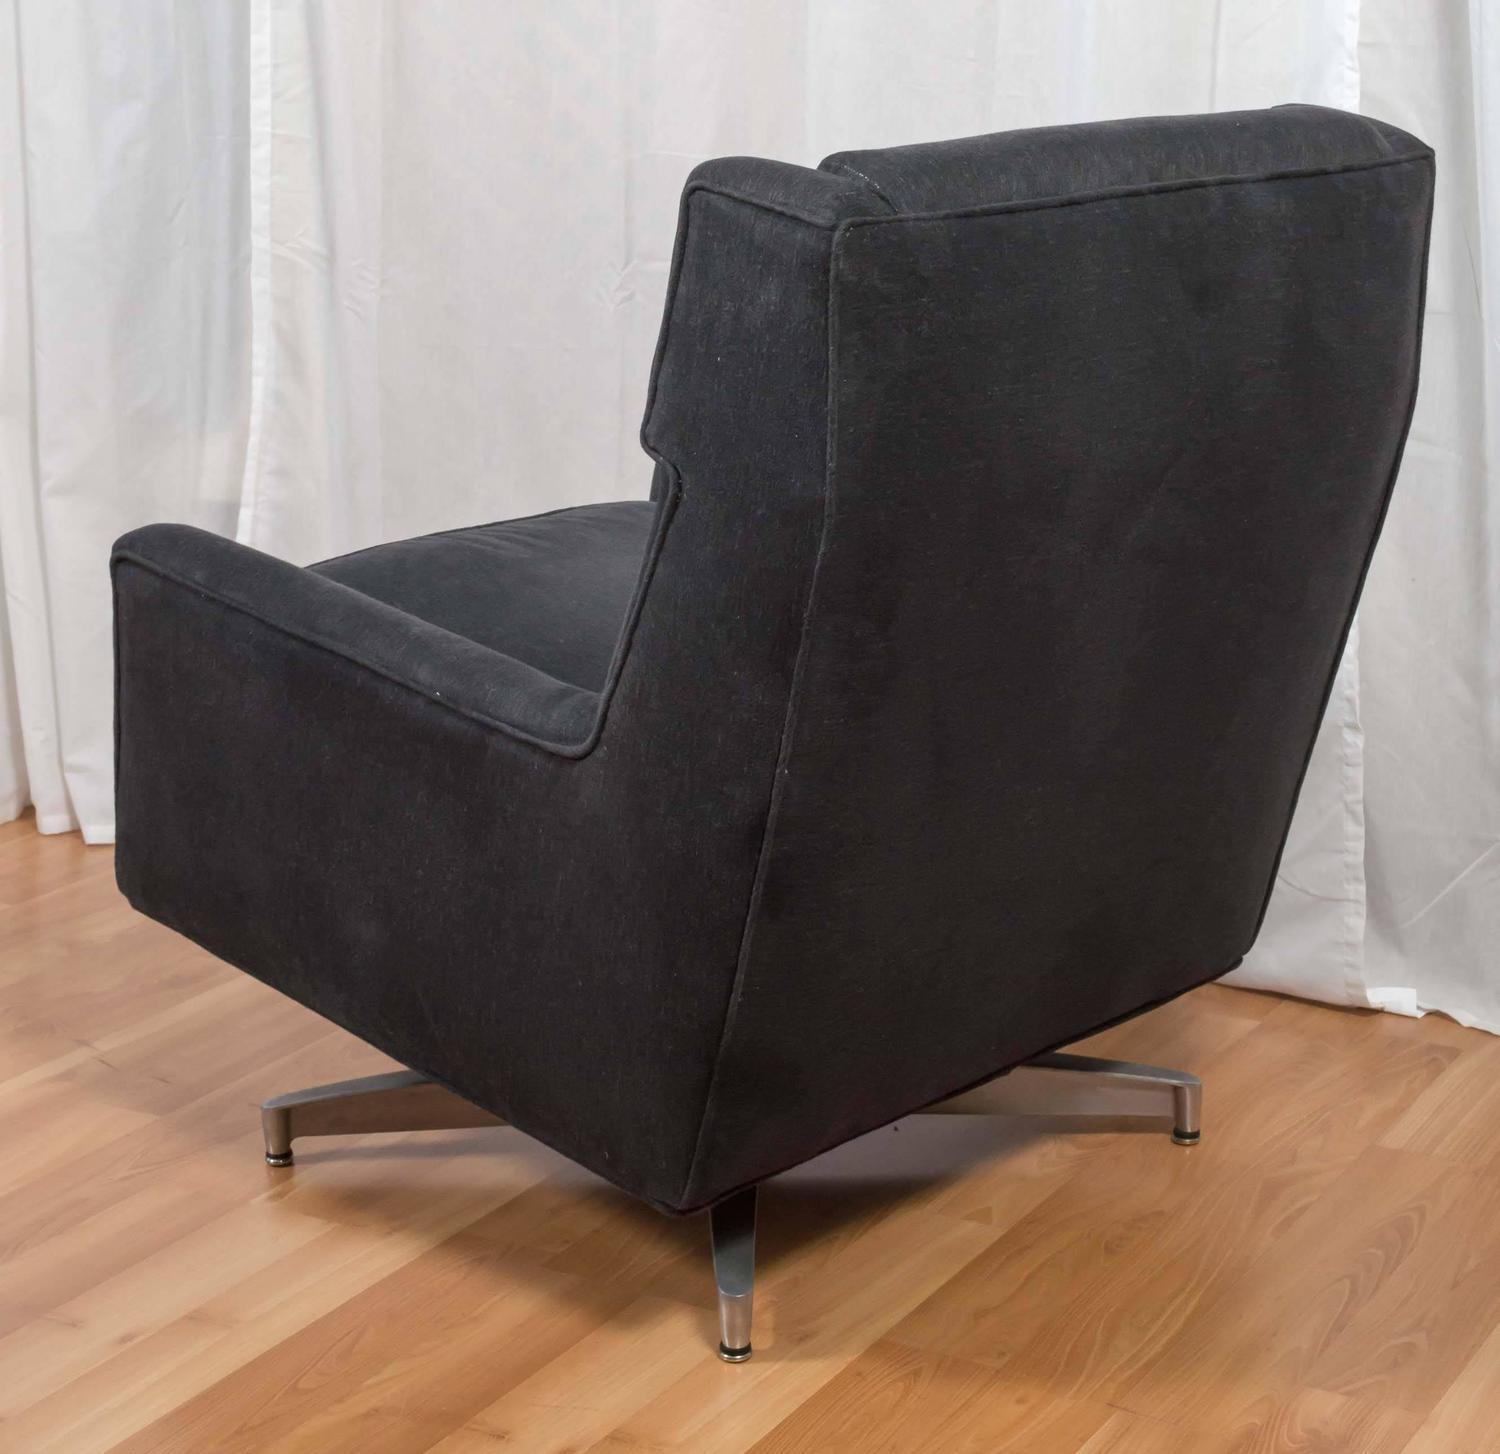 Plush mid century modern upholstered swivel lounge chair saturday